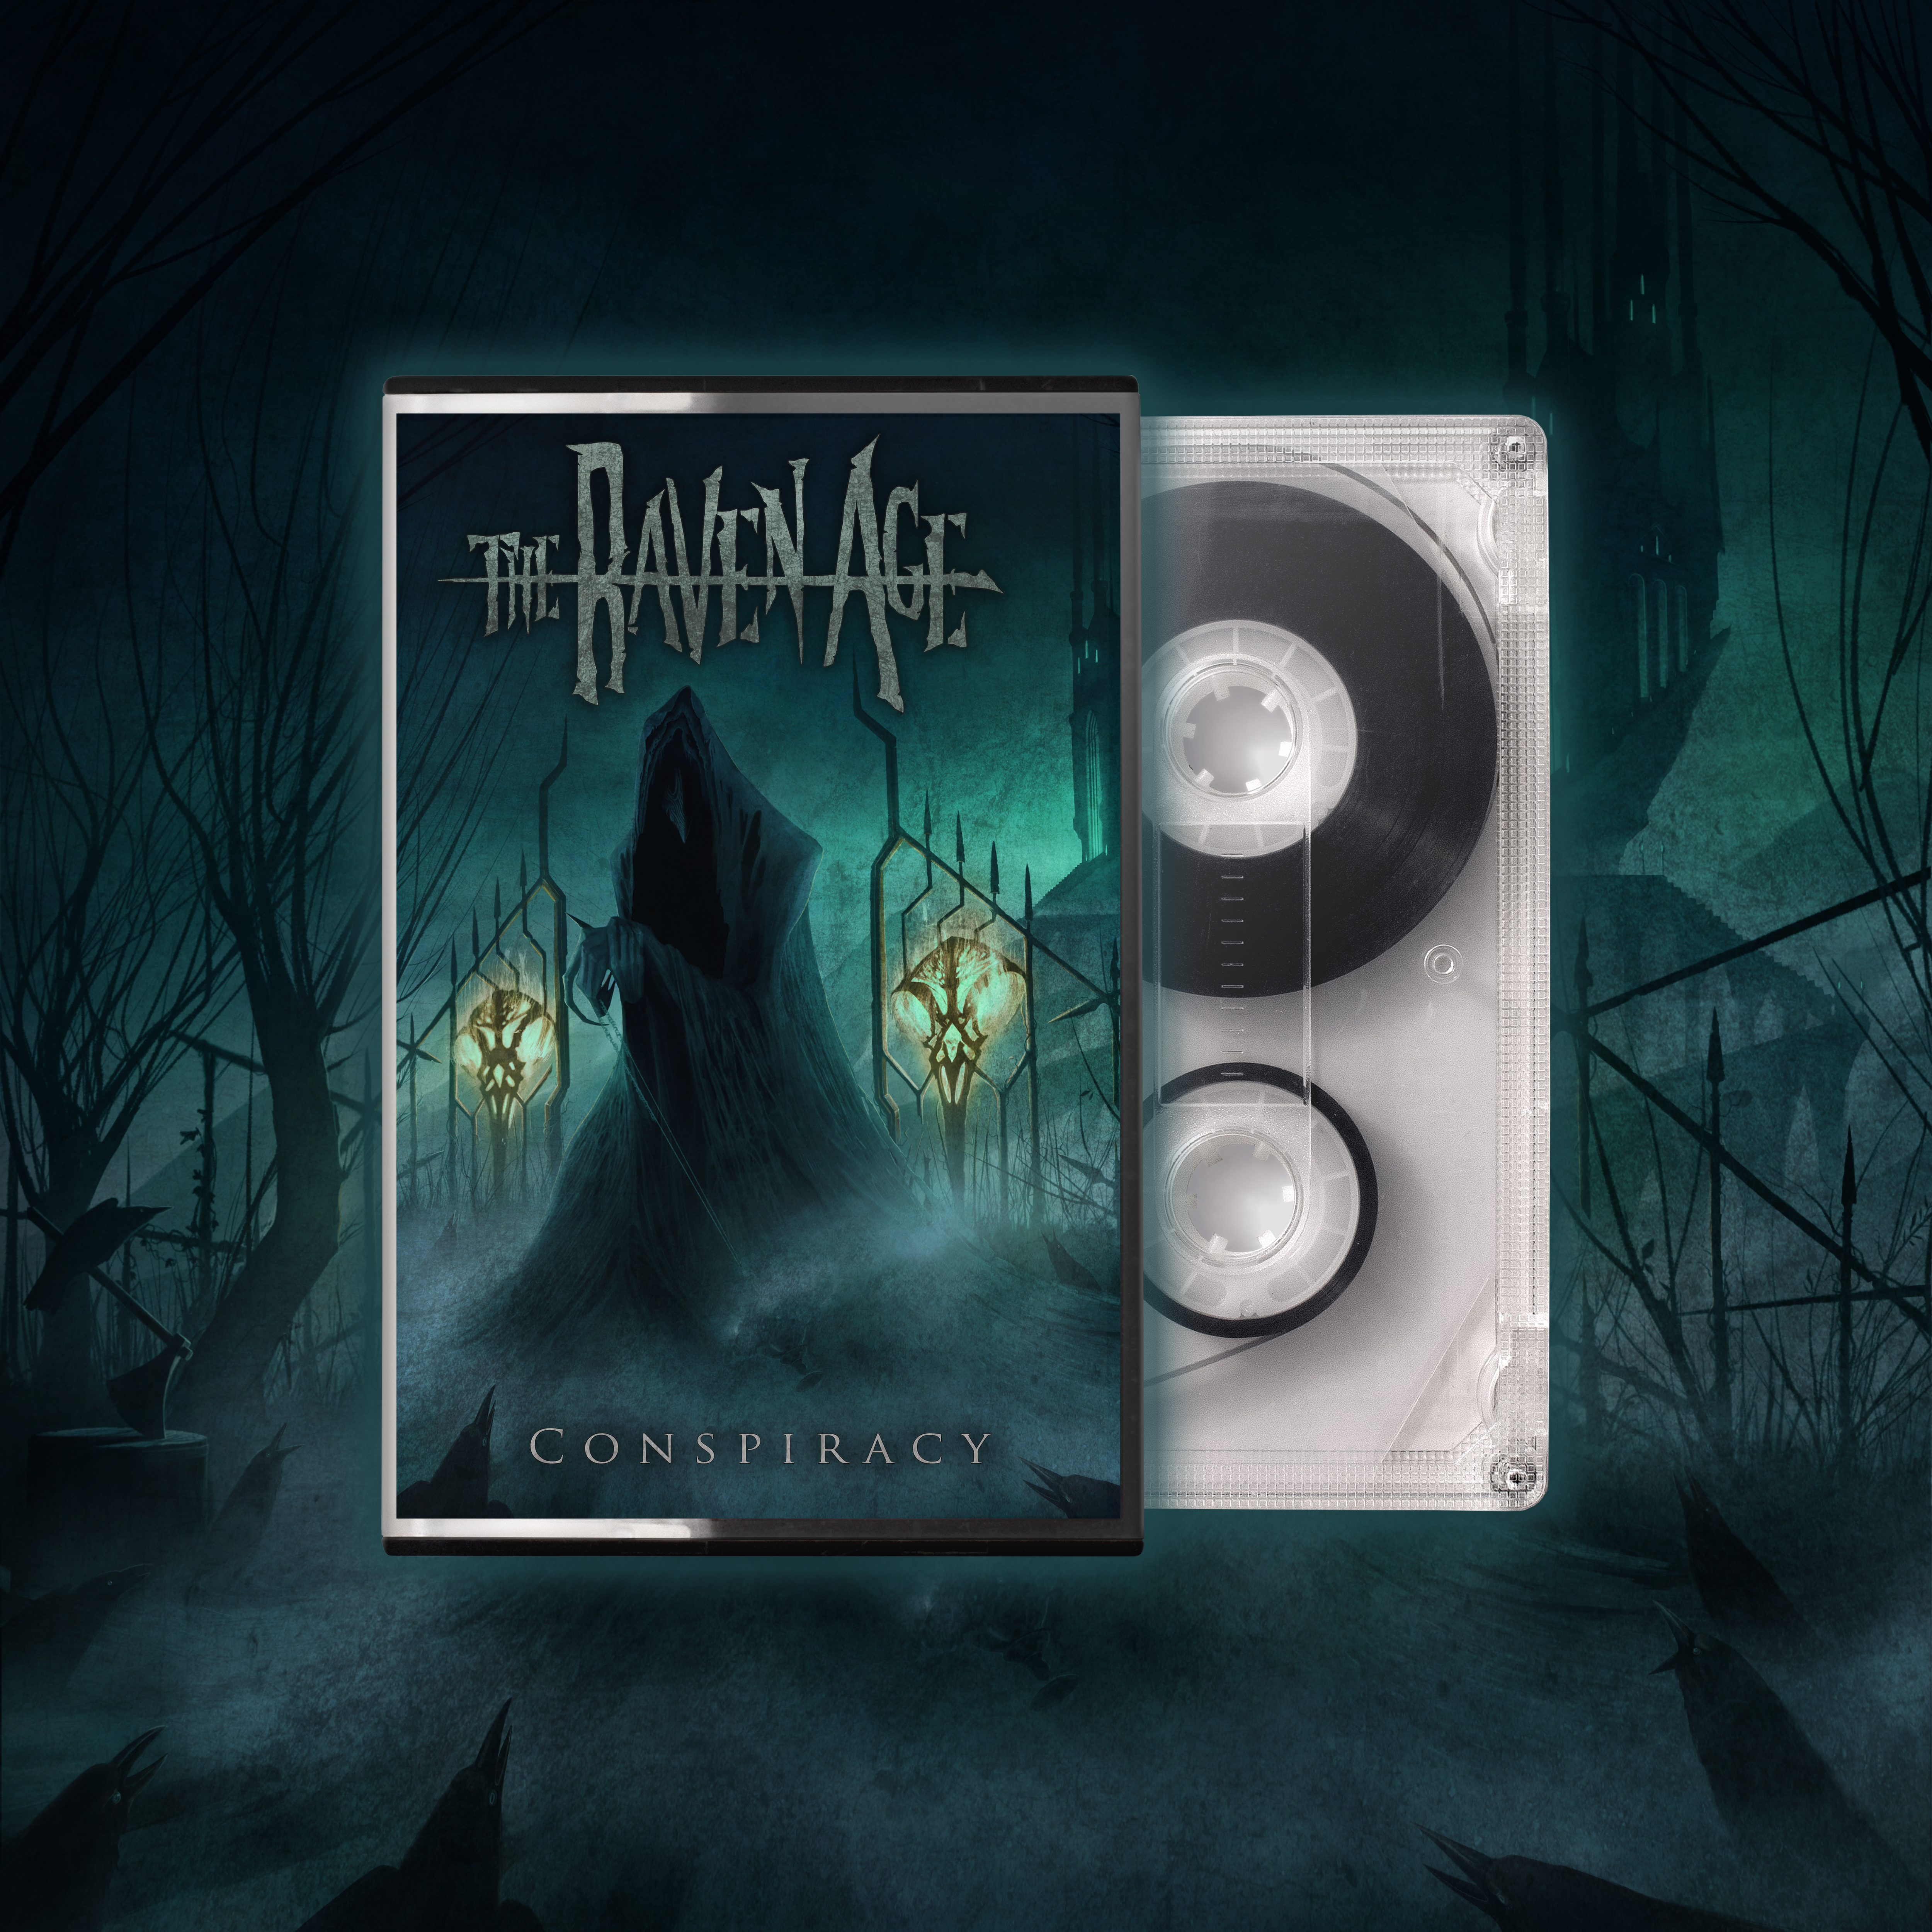 Conspiracy - Cassette - The Raven Age